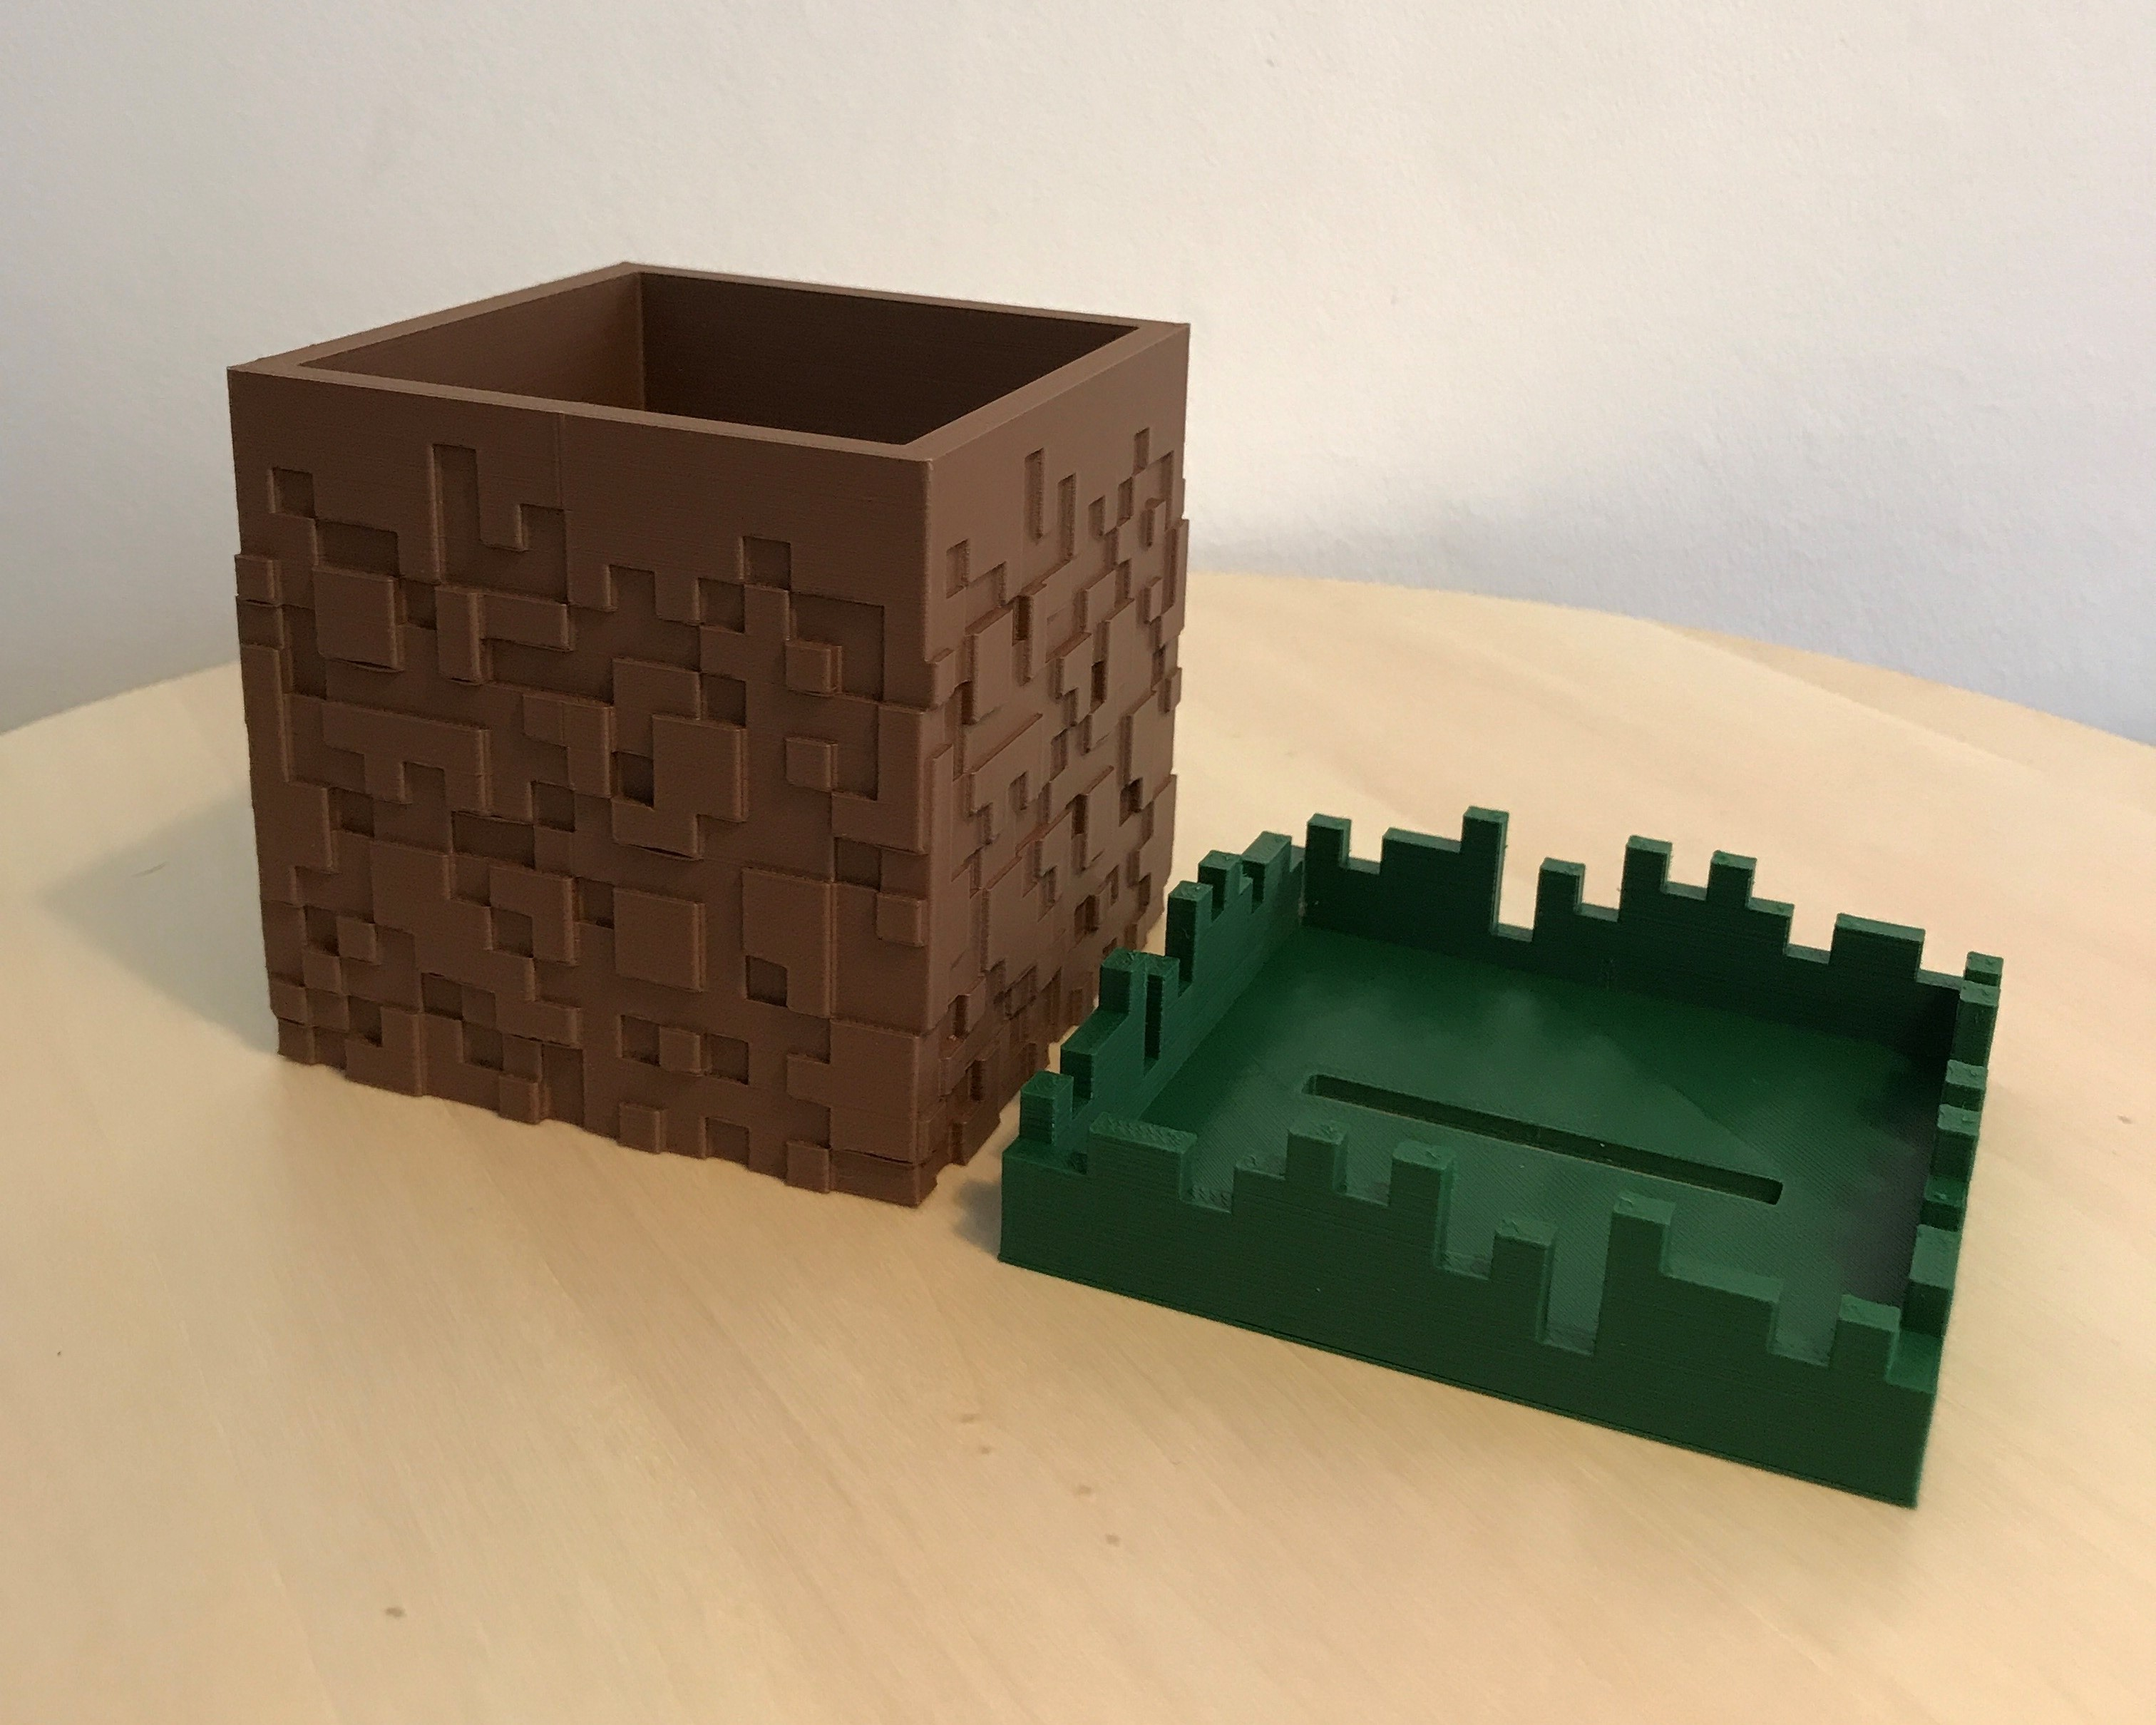 01.jpg Download free STL file Minecraft Grass Block Money Bank • 3D printing template, the3dsmith